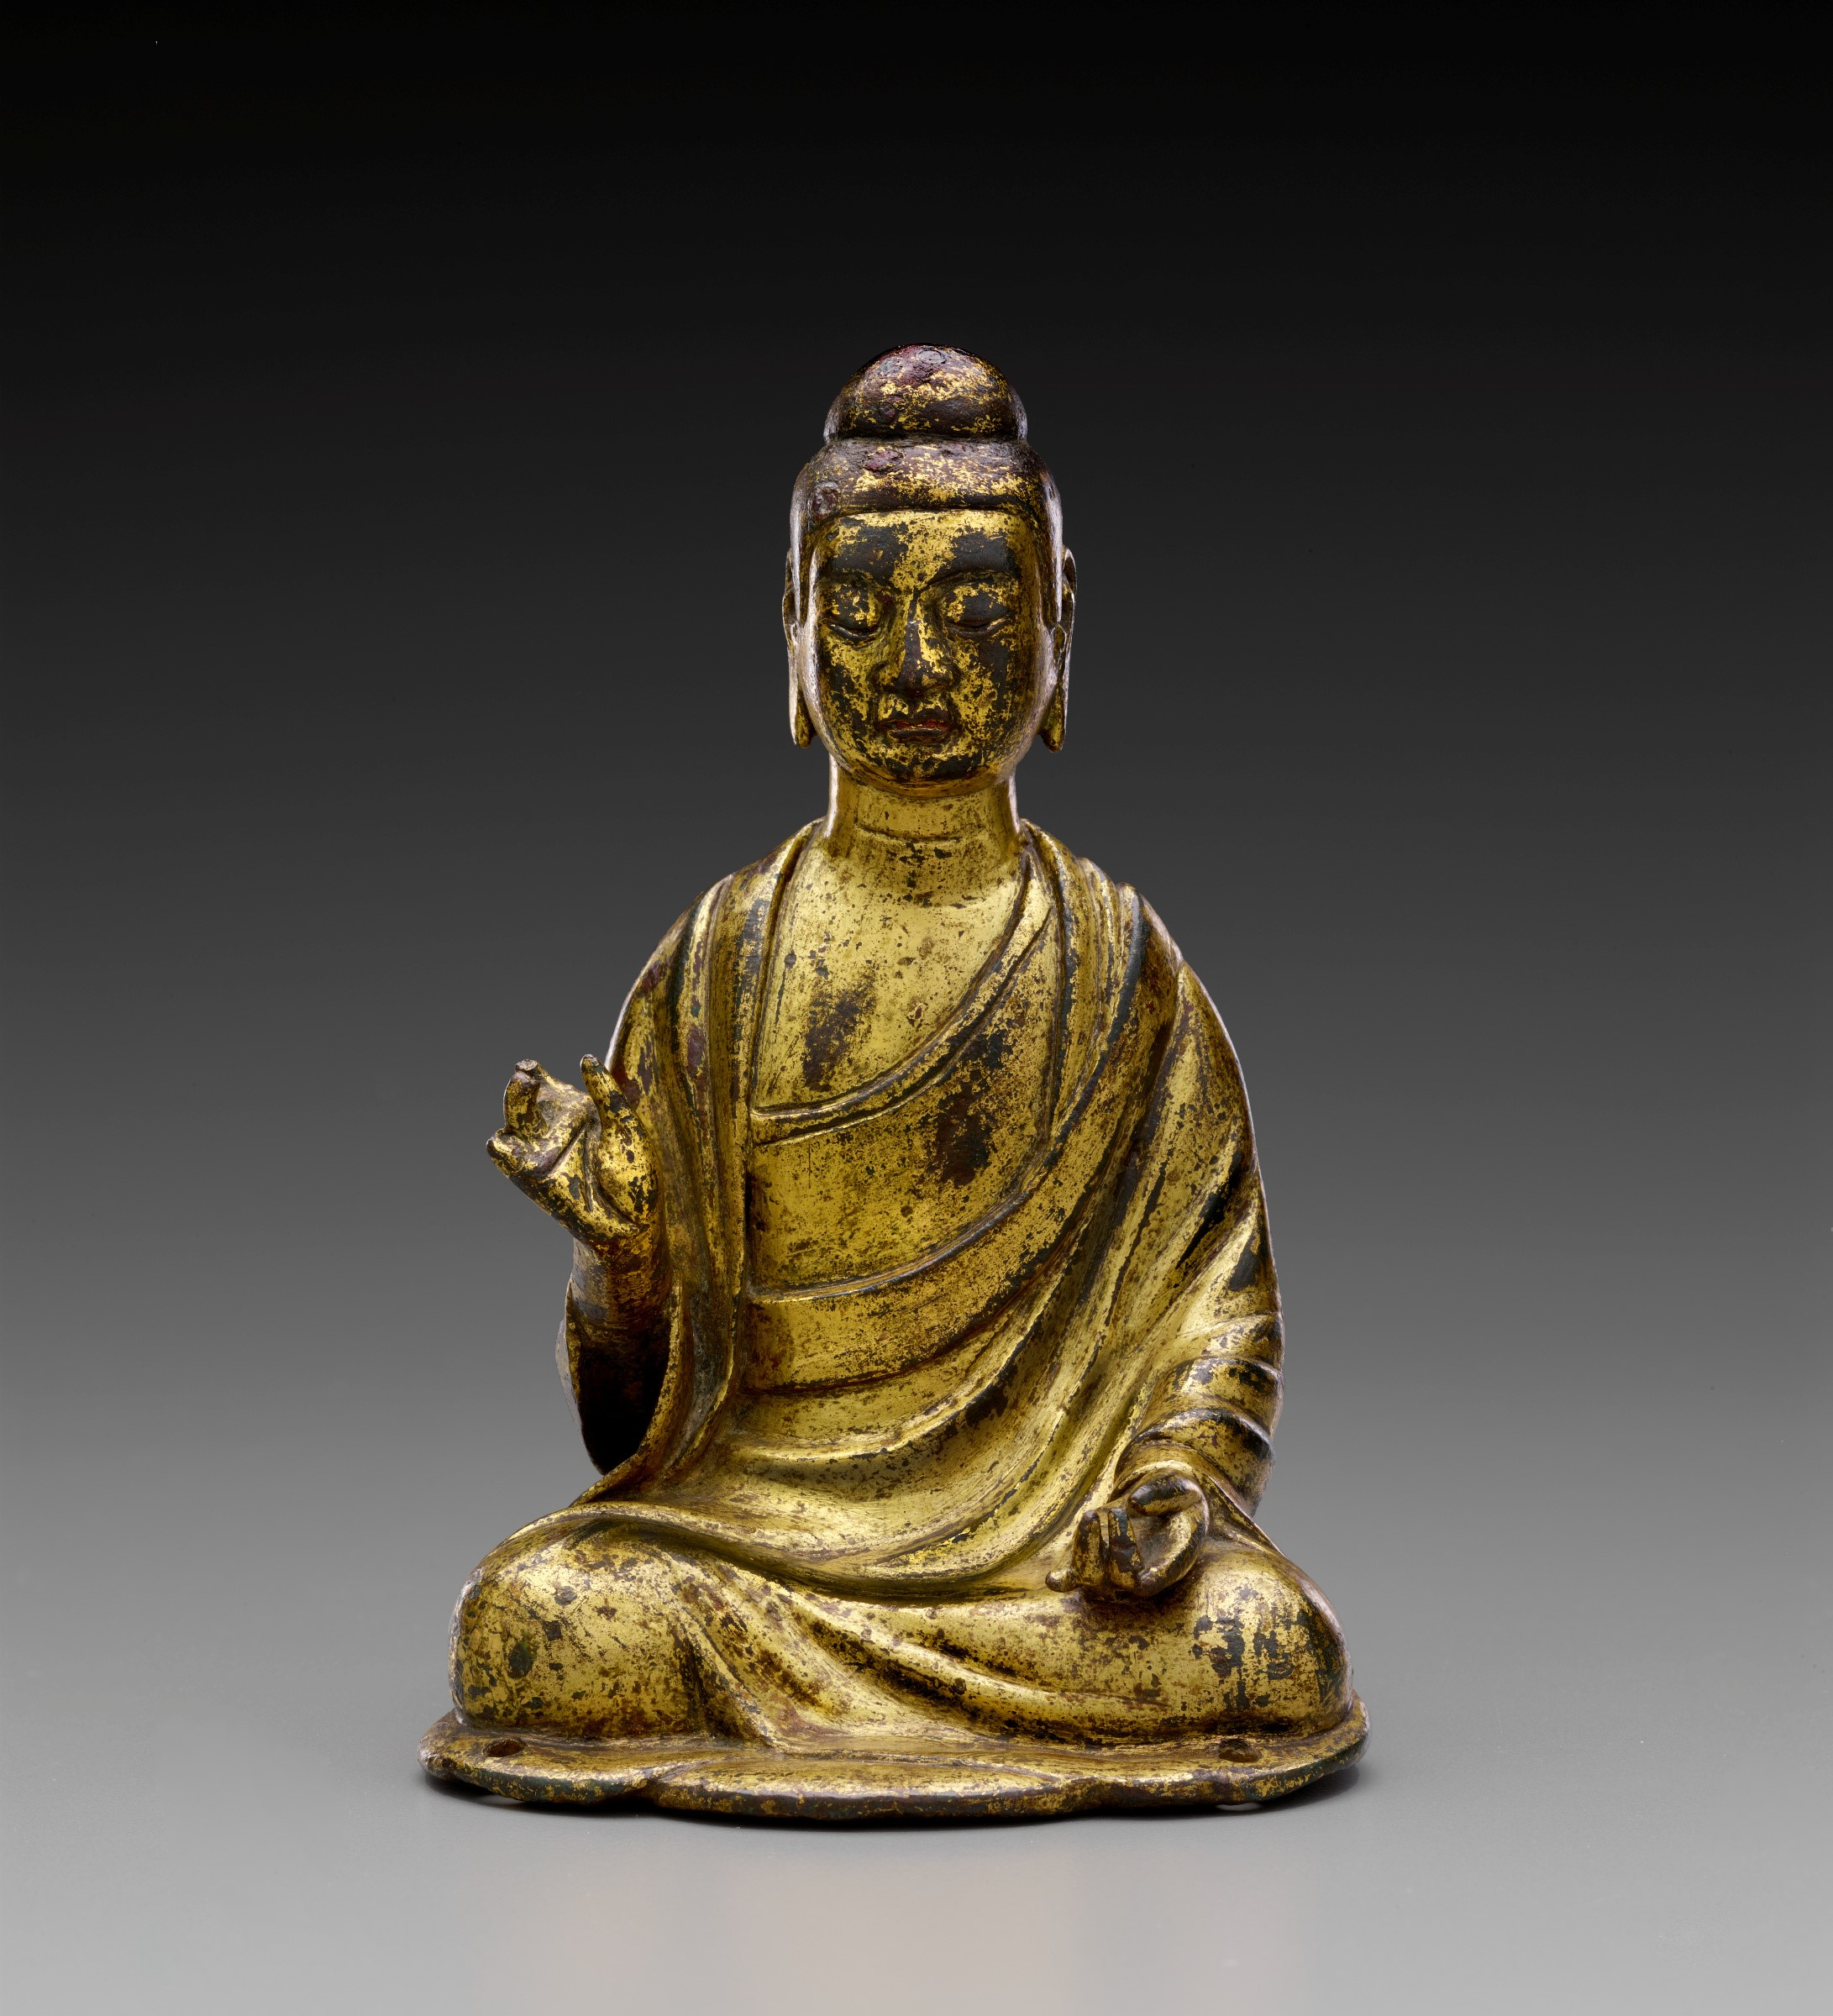 FOR CHINESE BRONZE LECTURE / Chinese, Amitabha Buddha, Swergold collection